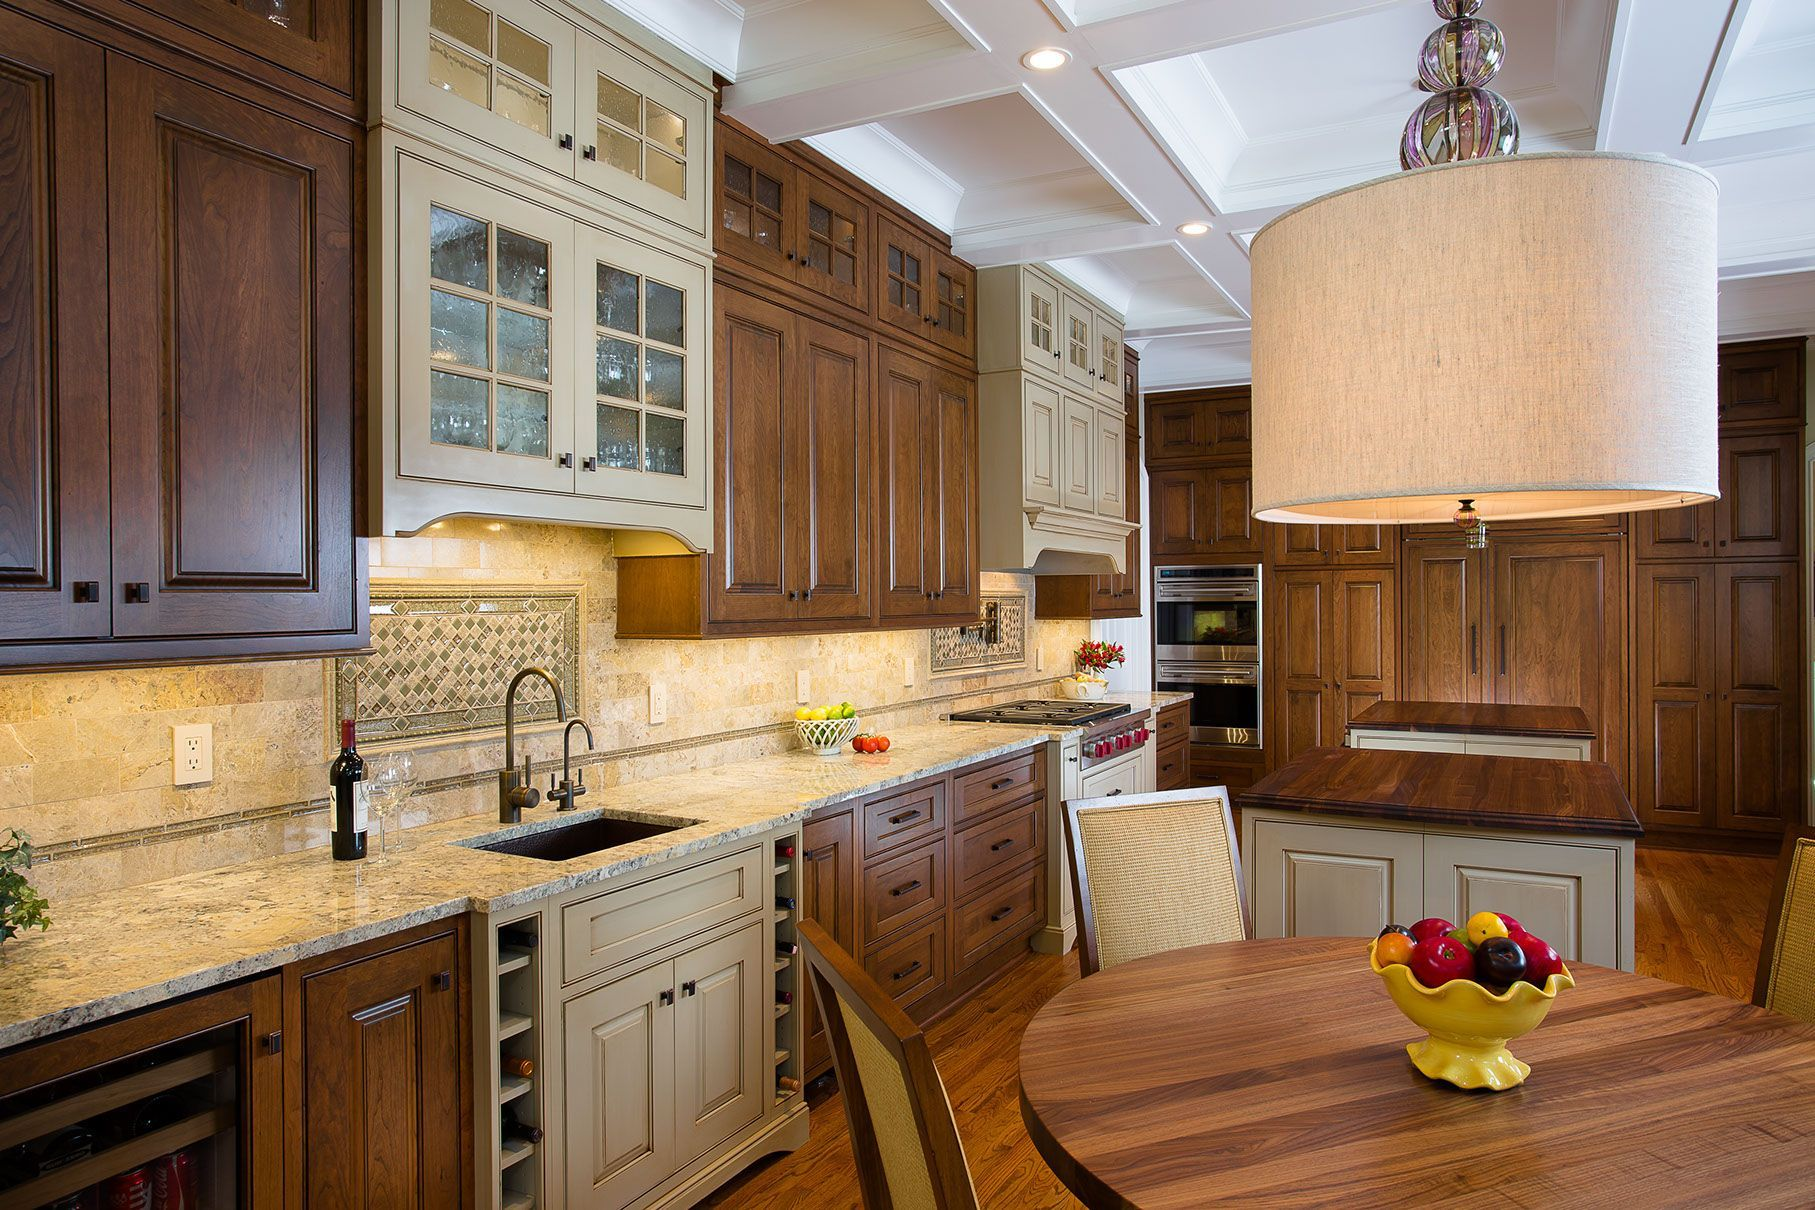 Image result for Shiloh Kitchen cabinets cherry with ...